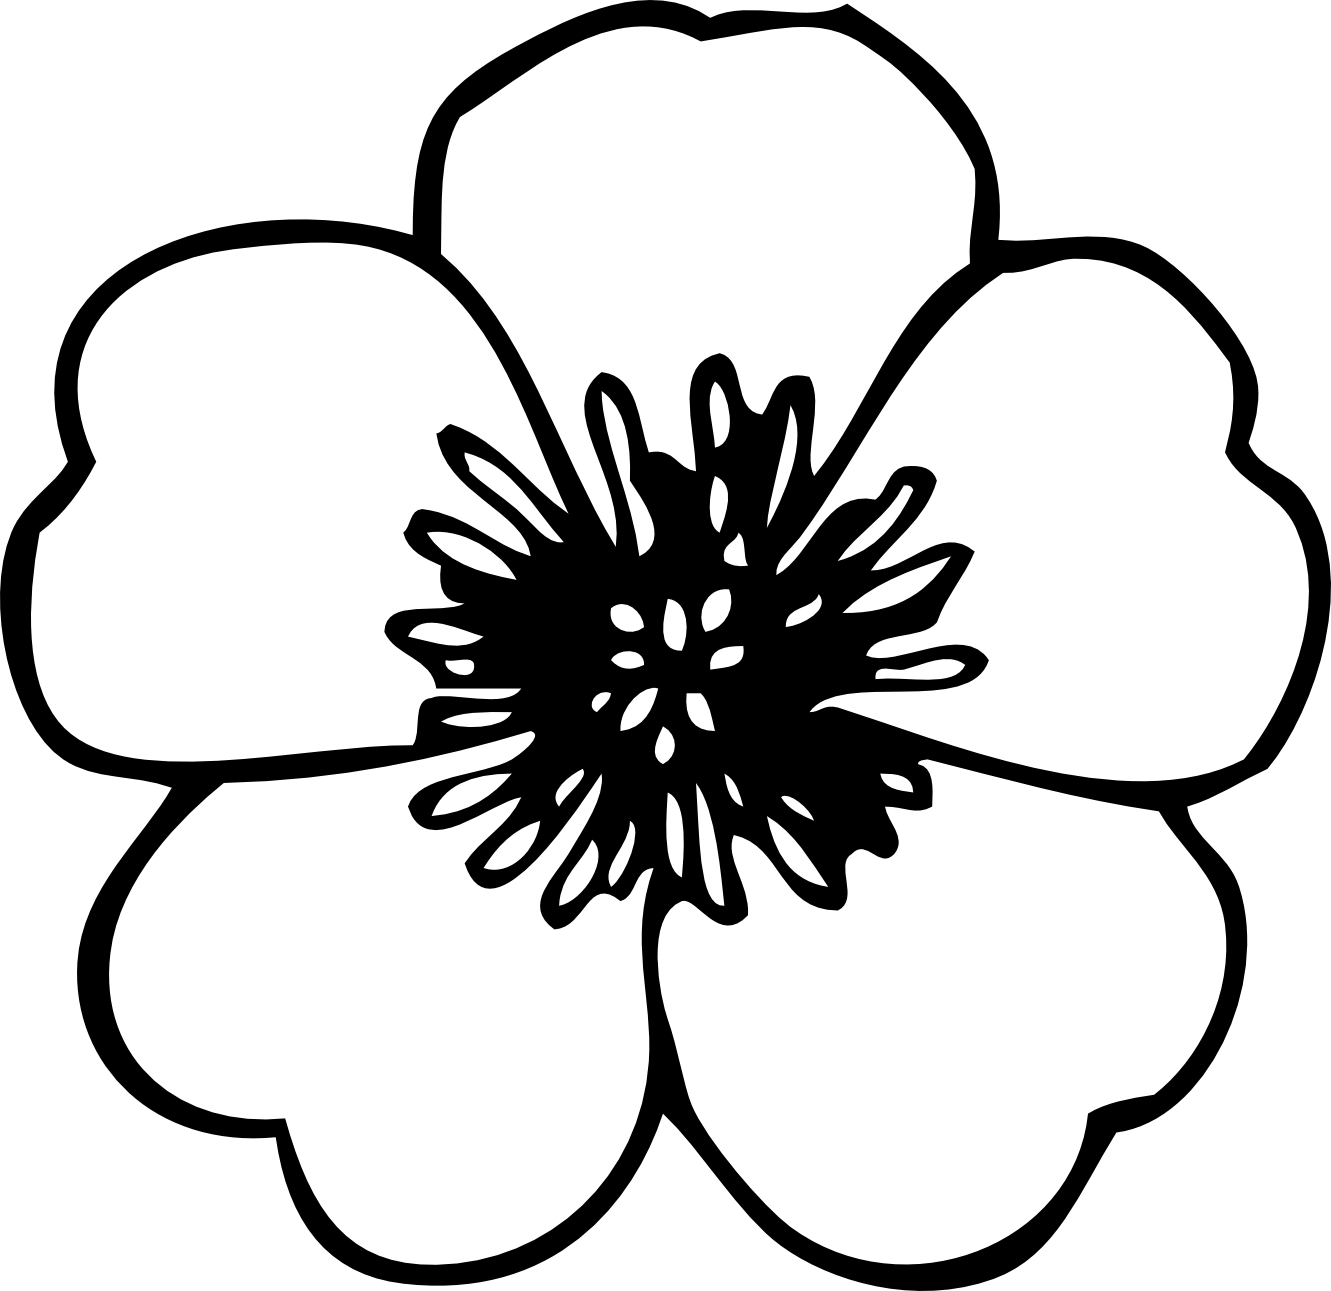 Library of graphic transparent stock flower black and white.